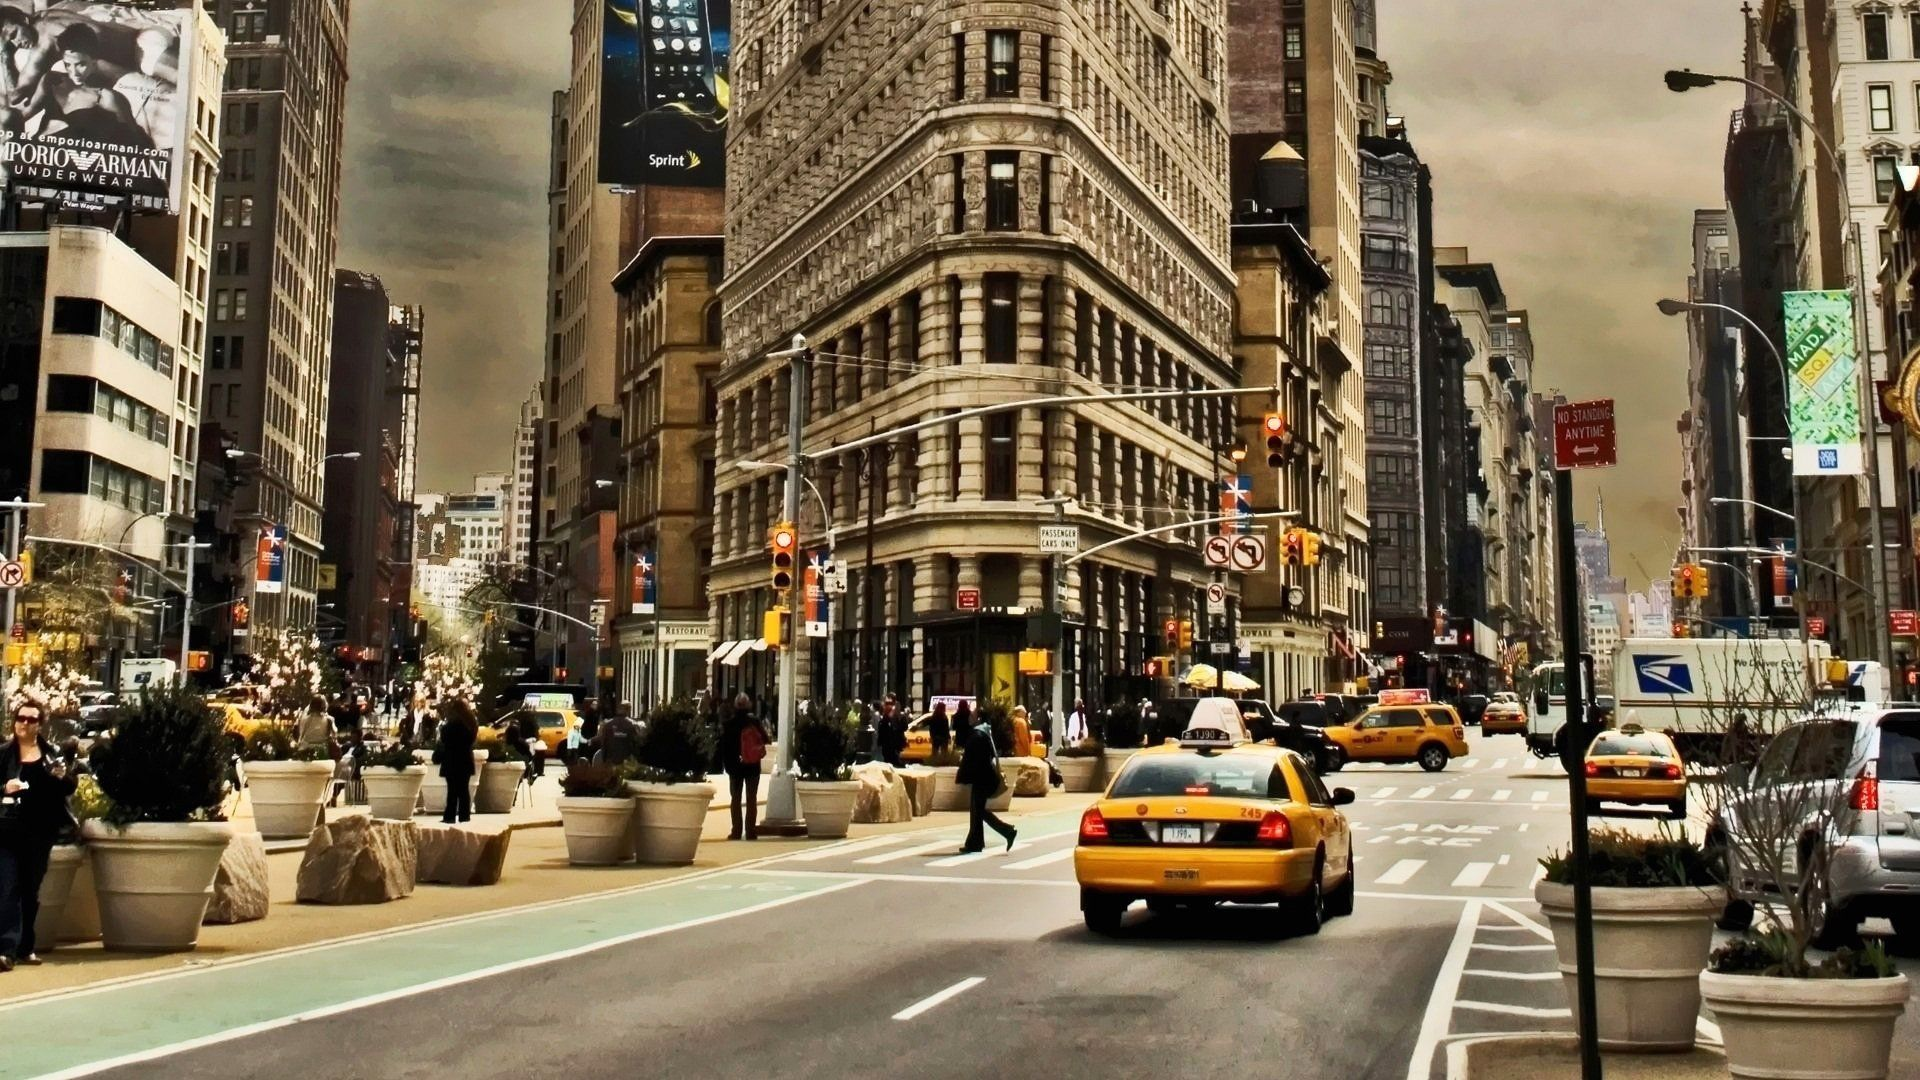 40 Hd New York City Wallpapers Backgrounds For Free Download New York Wallpaper New York City Photos New York City Buildings